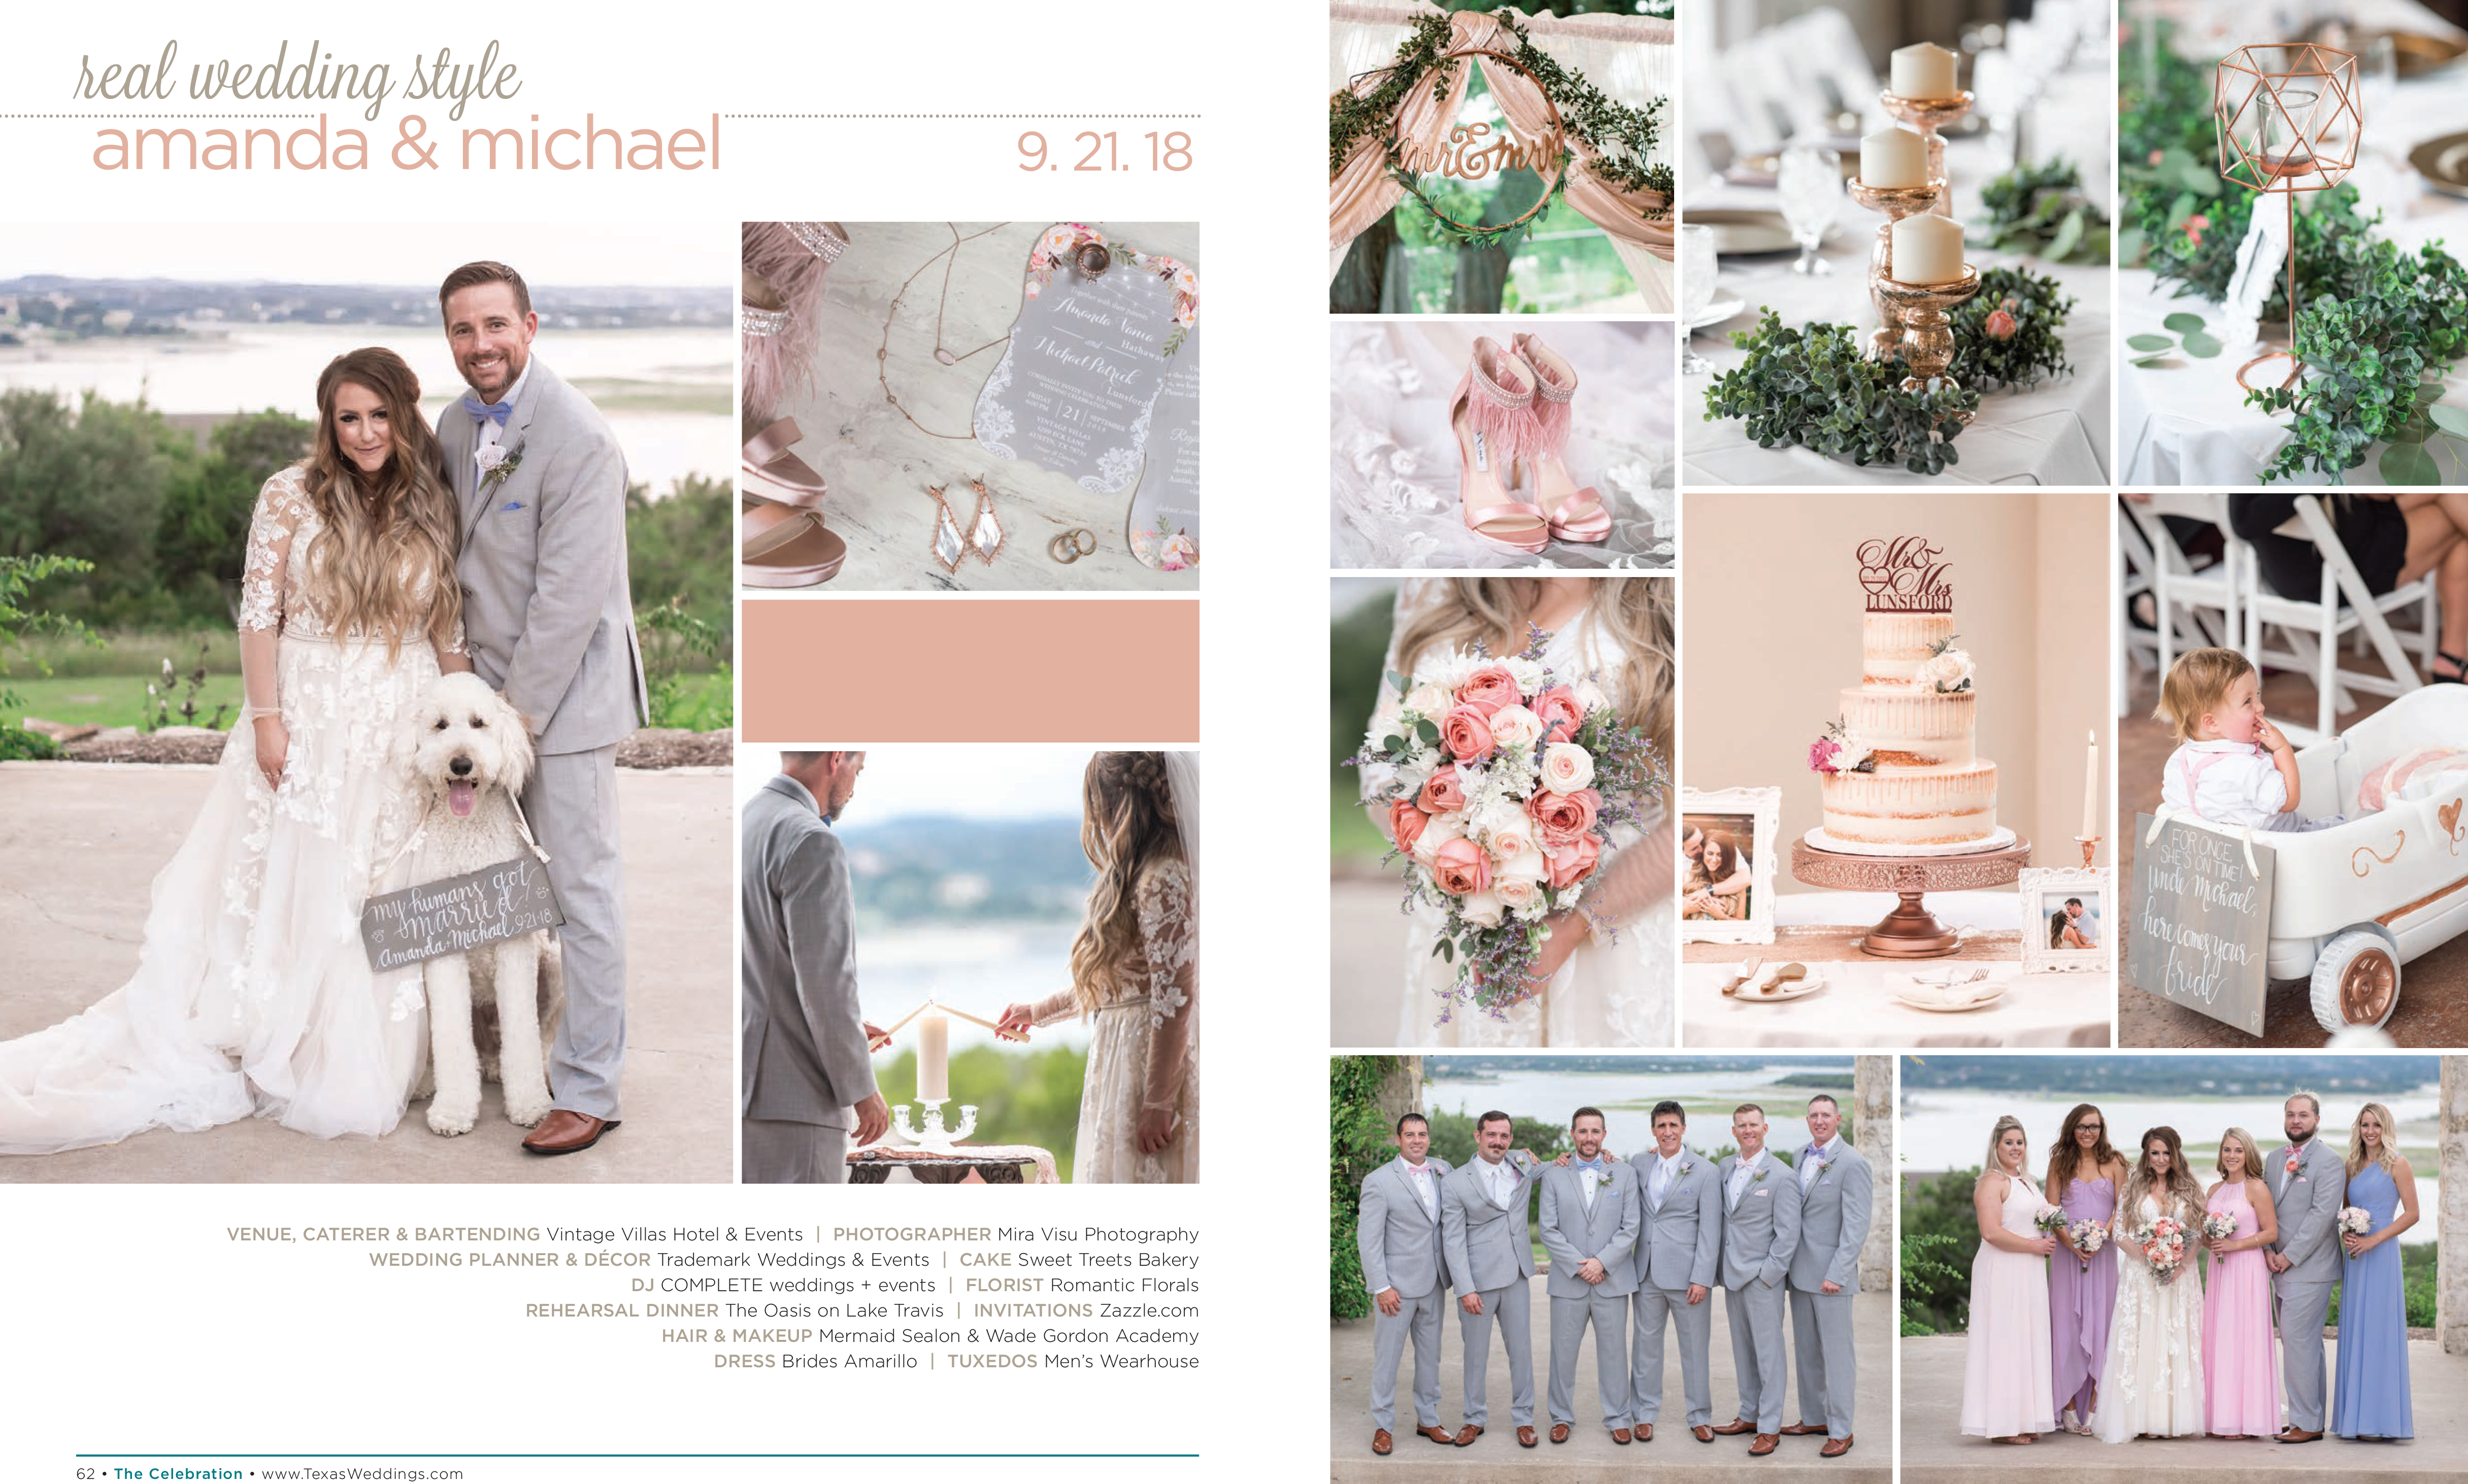 Amanda & Michael in their Real Wedding Page in the Spring/Summer 2019 Texas Wedding Guide